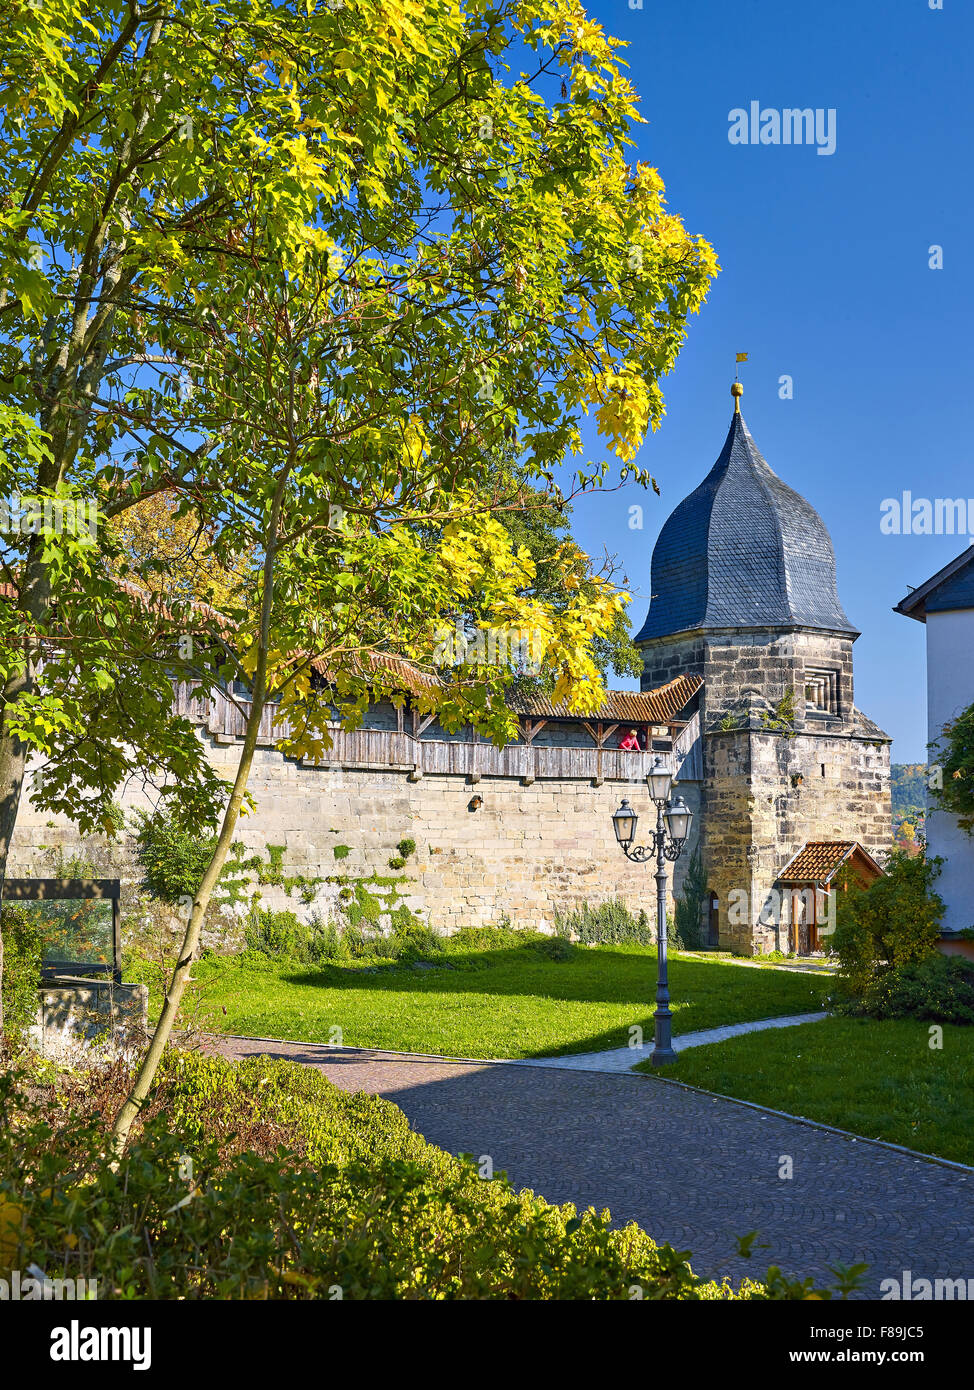 Witch tower of the city fortifications, Kronach, Germany - Stock Image